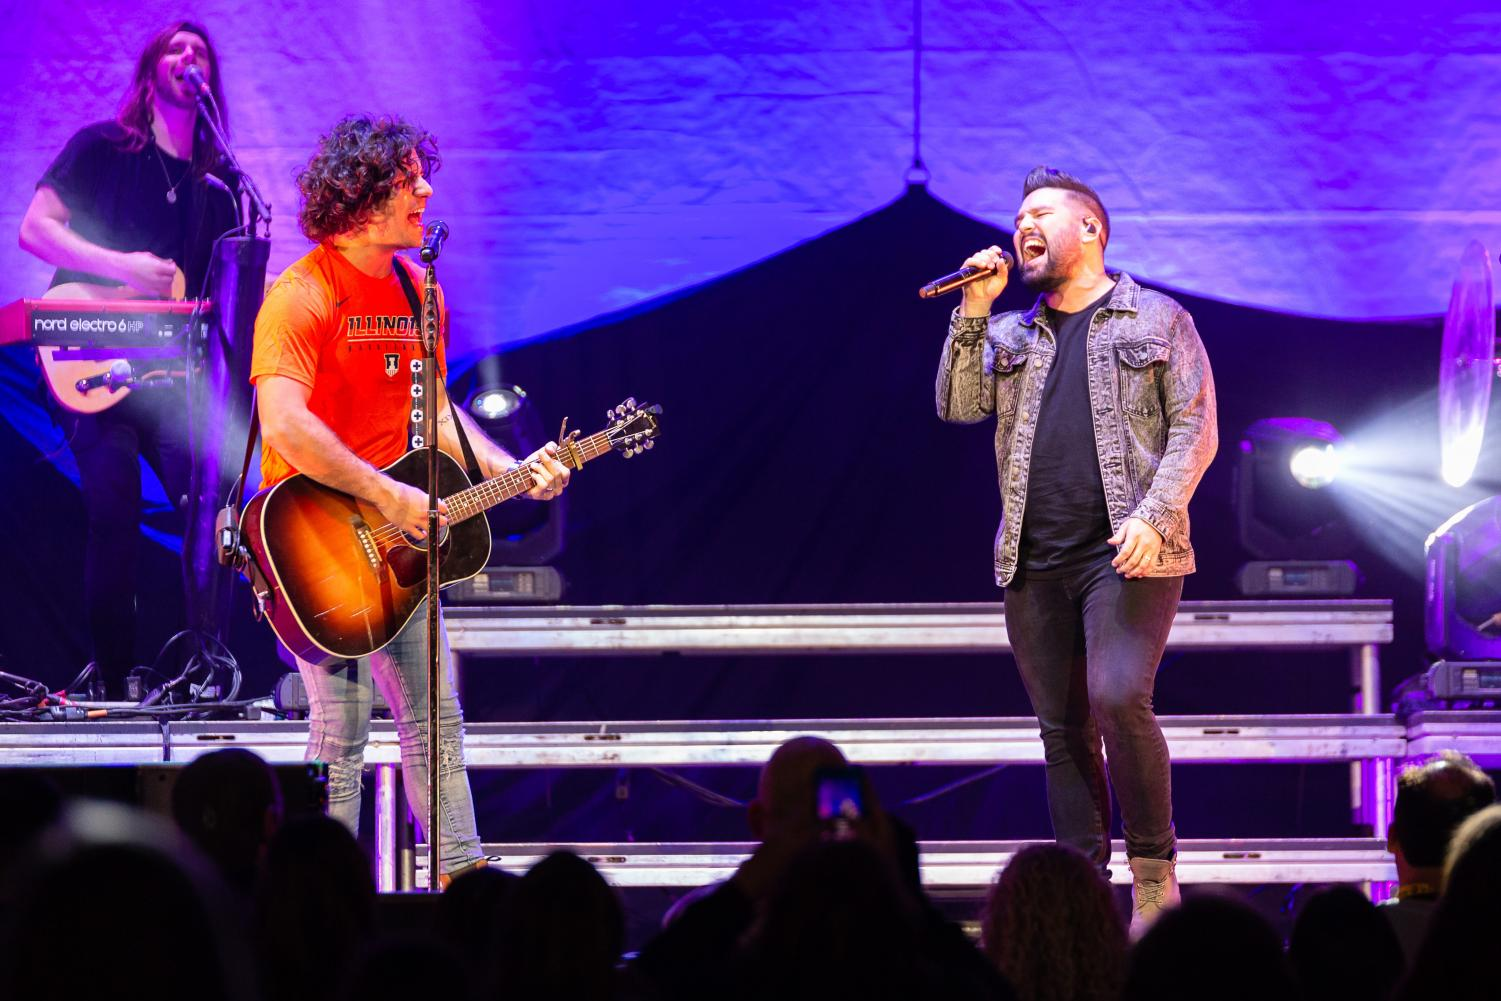 Country music duo Dan and Shay open for Chris Young on the Losing Sleep World Tour at State Farm Center on Saturday, Oct. 27, 2018.